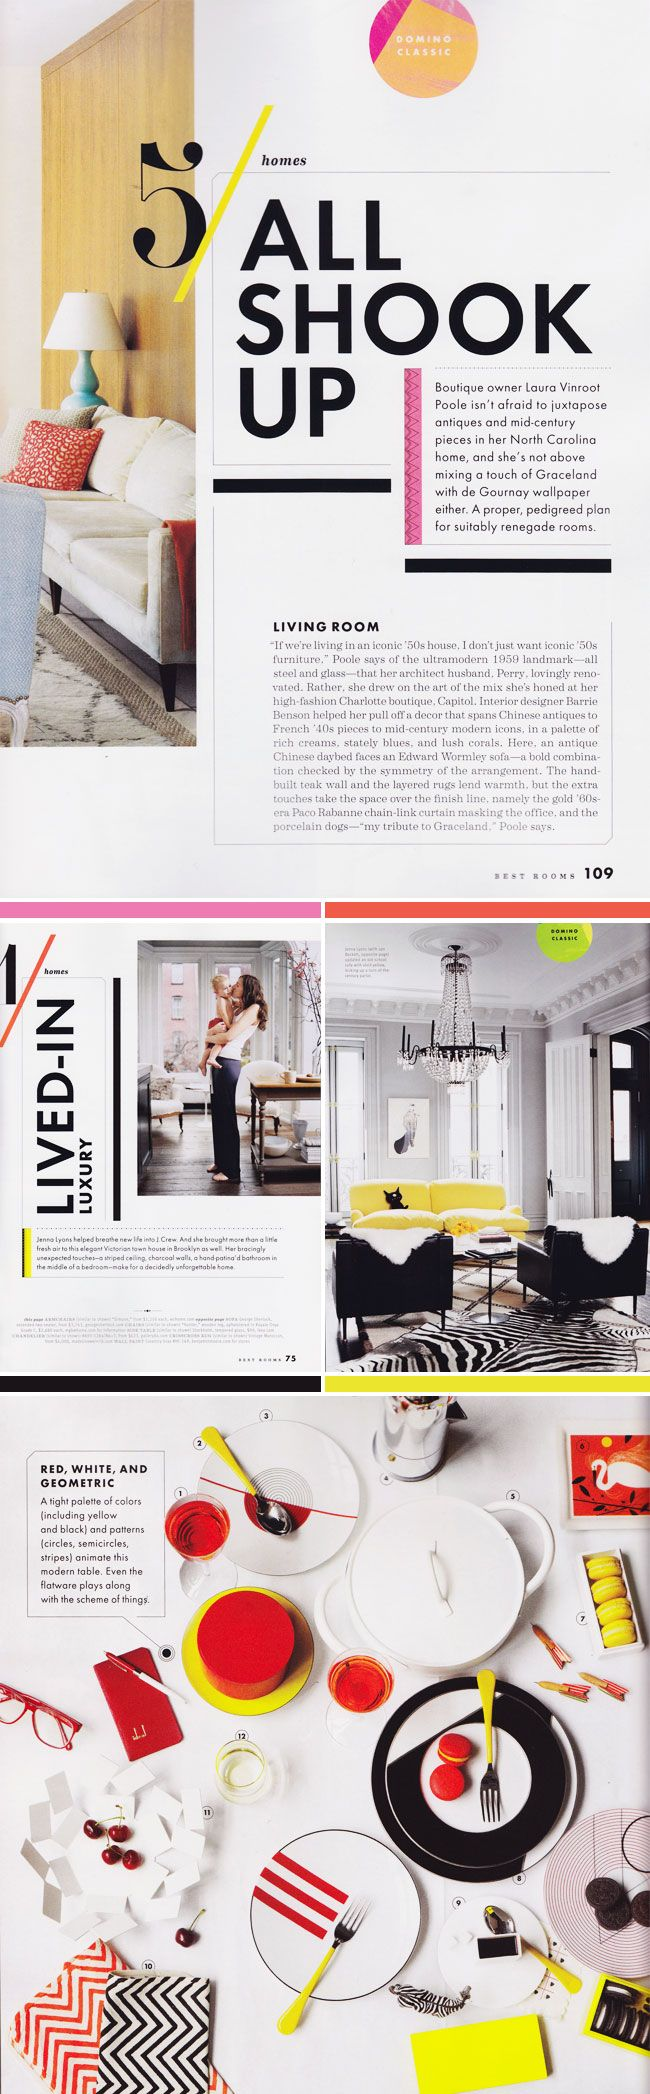 Domino Magazine Special Edition Best Of Rooms | the colors, contrast, and chunky shapes look so nice together.